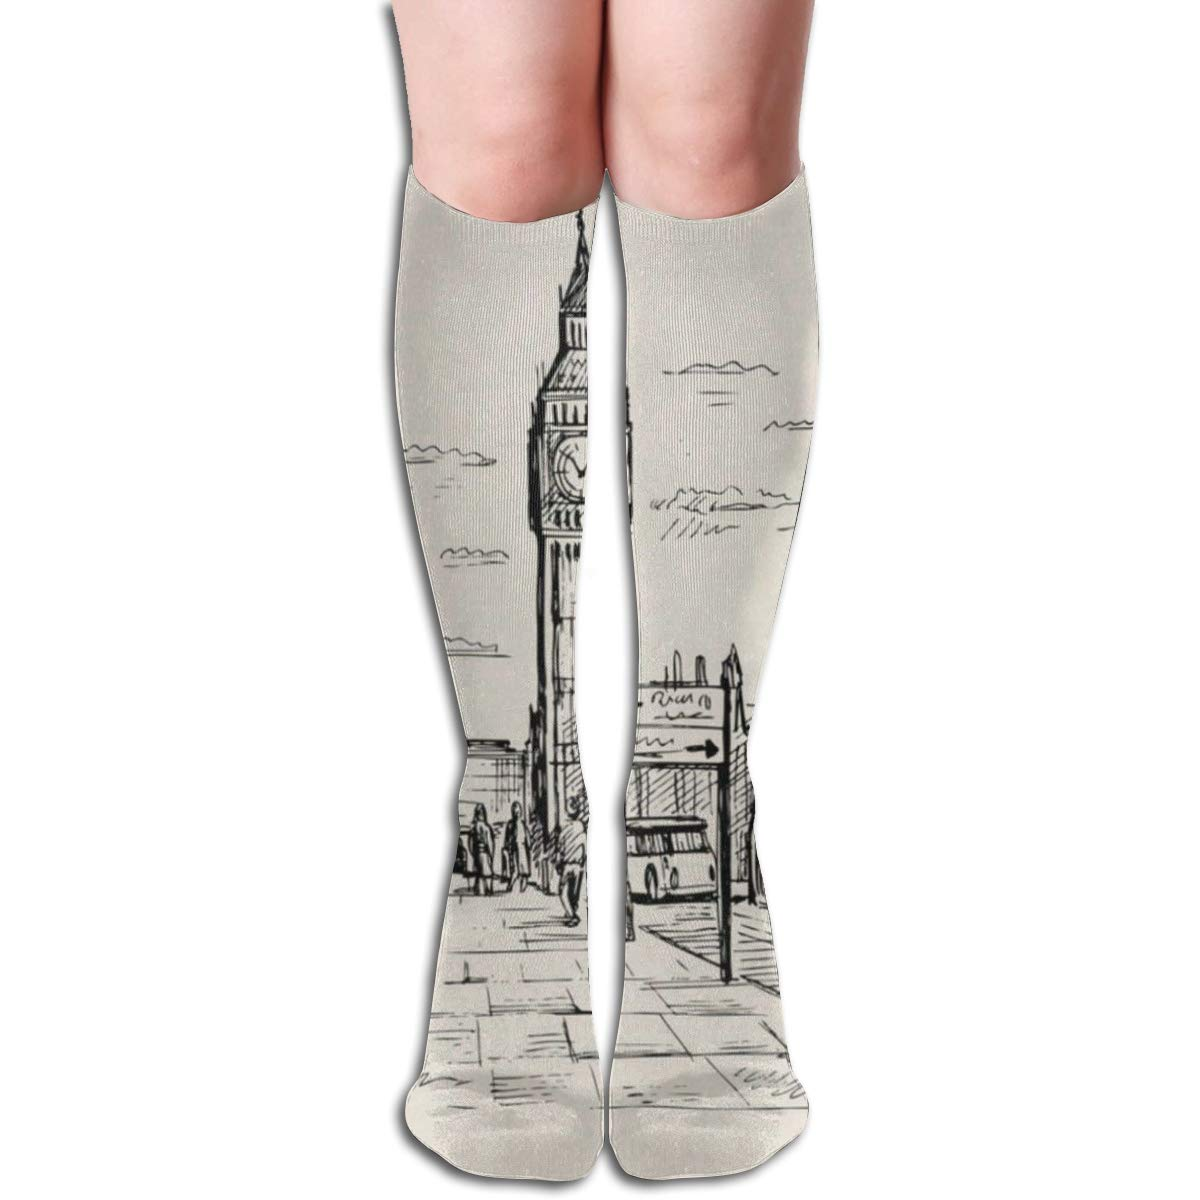 Stretch Stocking Hand Drawn London Street Soccer Socks Over The Calf Customized For Running,Athletic,Travel